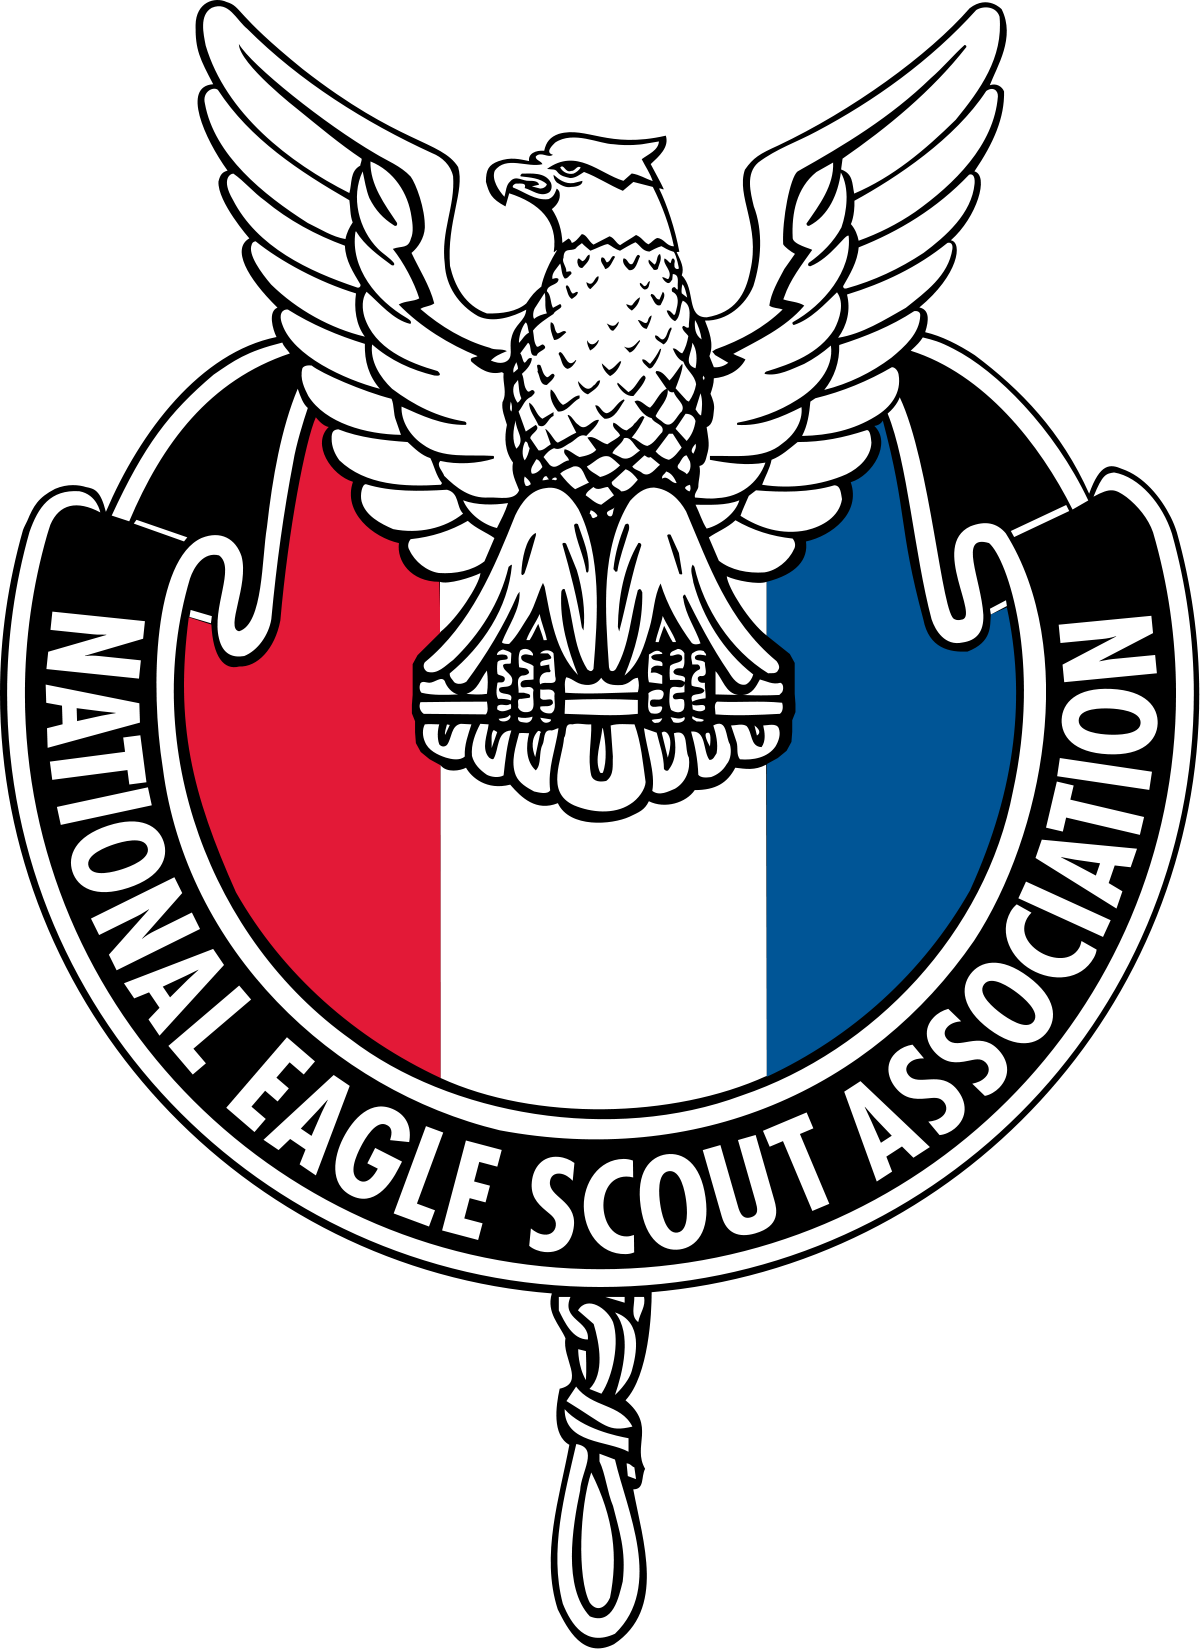 Scout clipart eagle scout. National association wikipedia